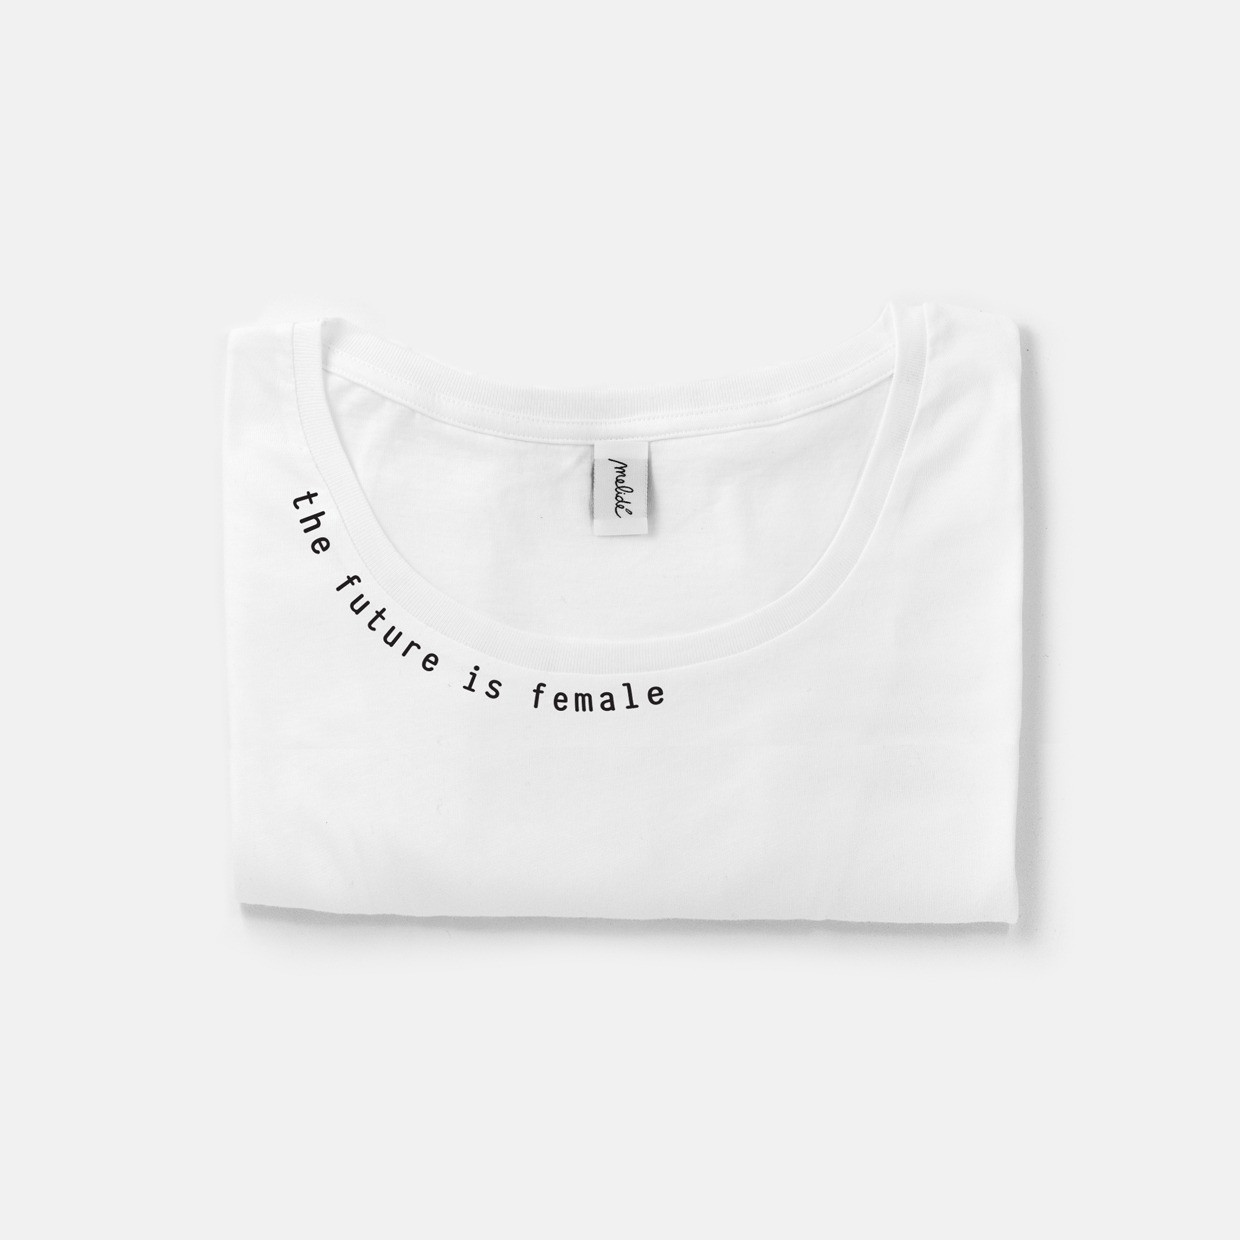 The FUTURE IS FEMALE wide neck tee